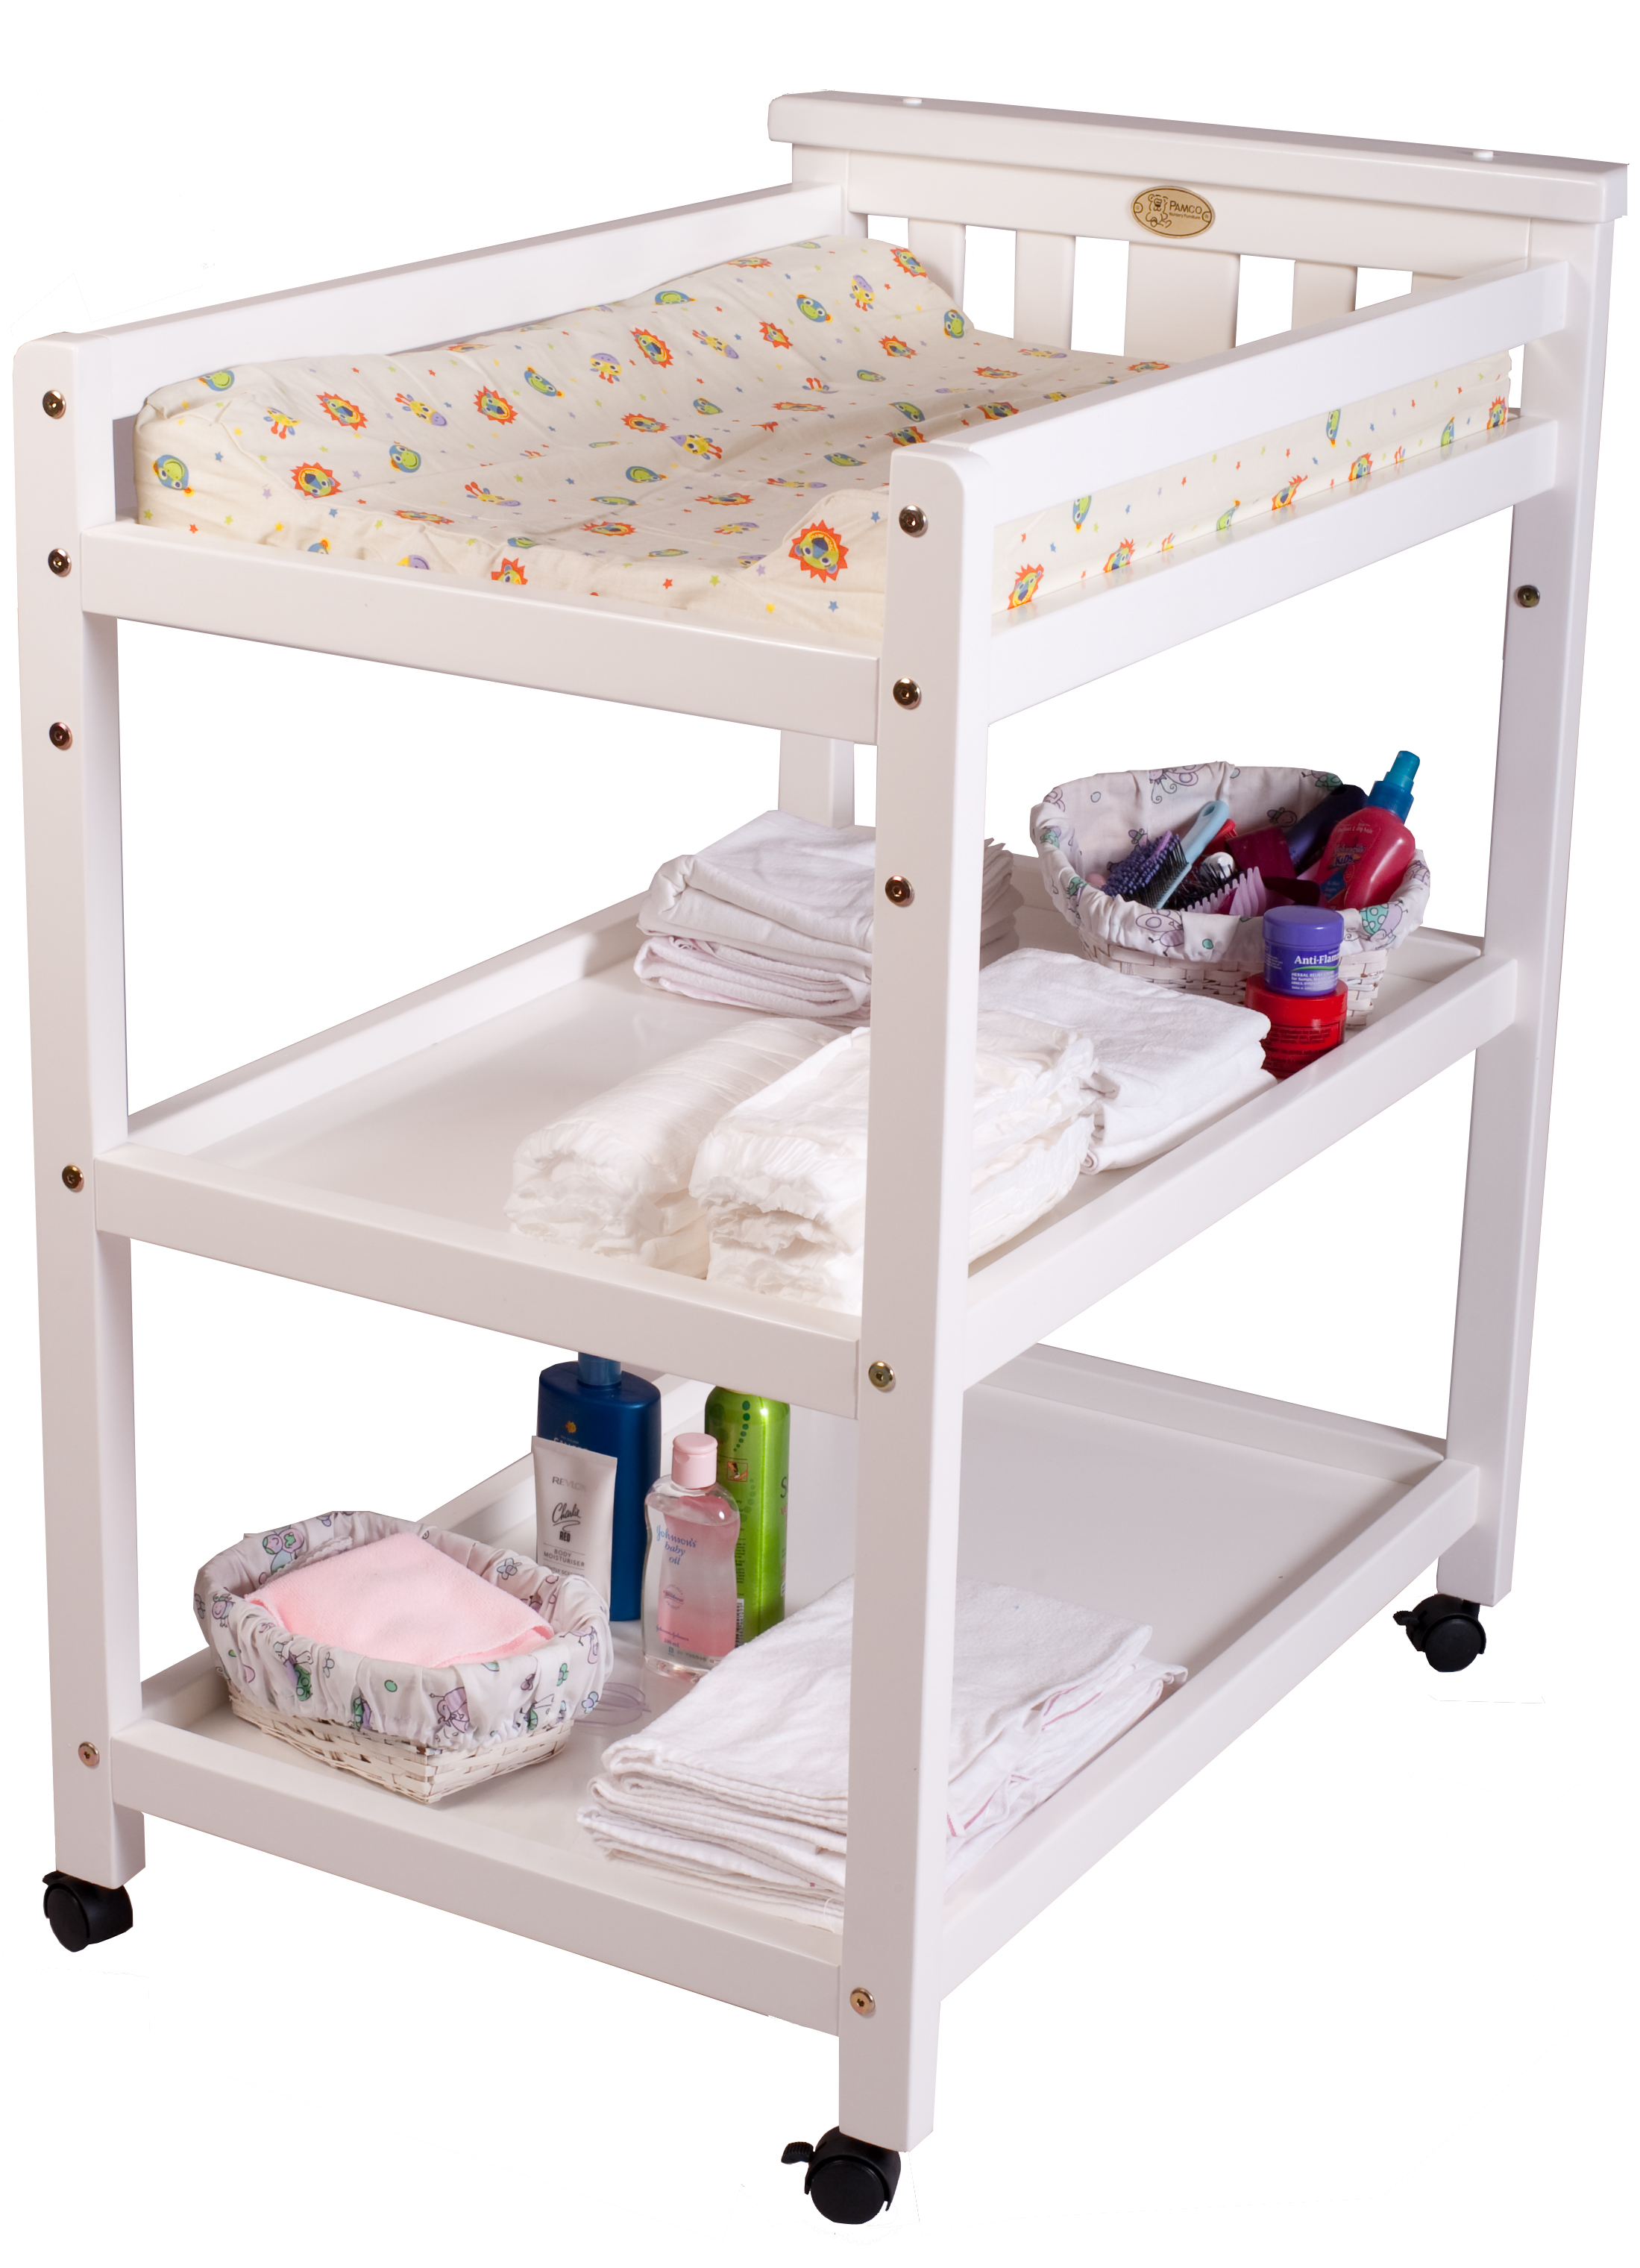 changing table with wheels simple small wood baby bed with changing table and shelves painted with wvphadw